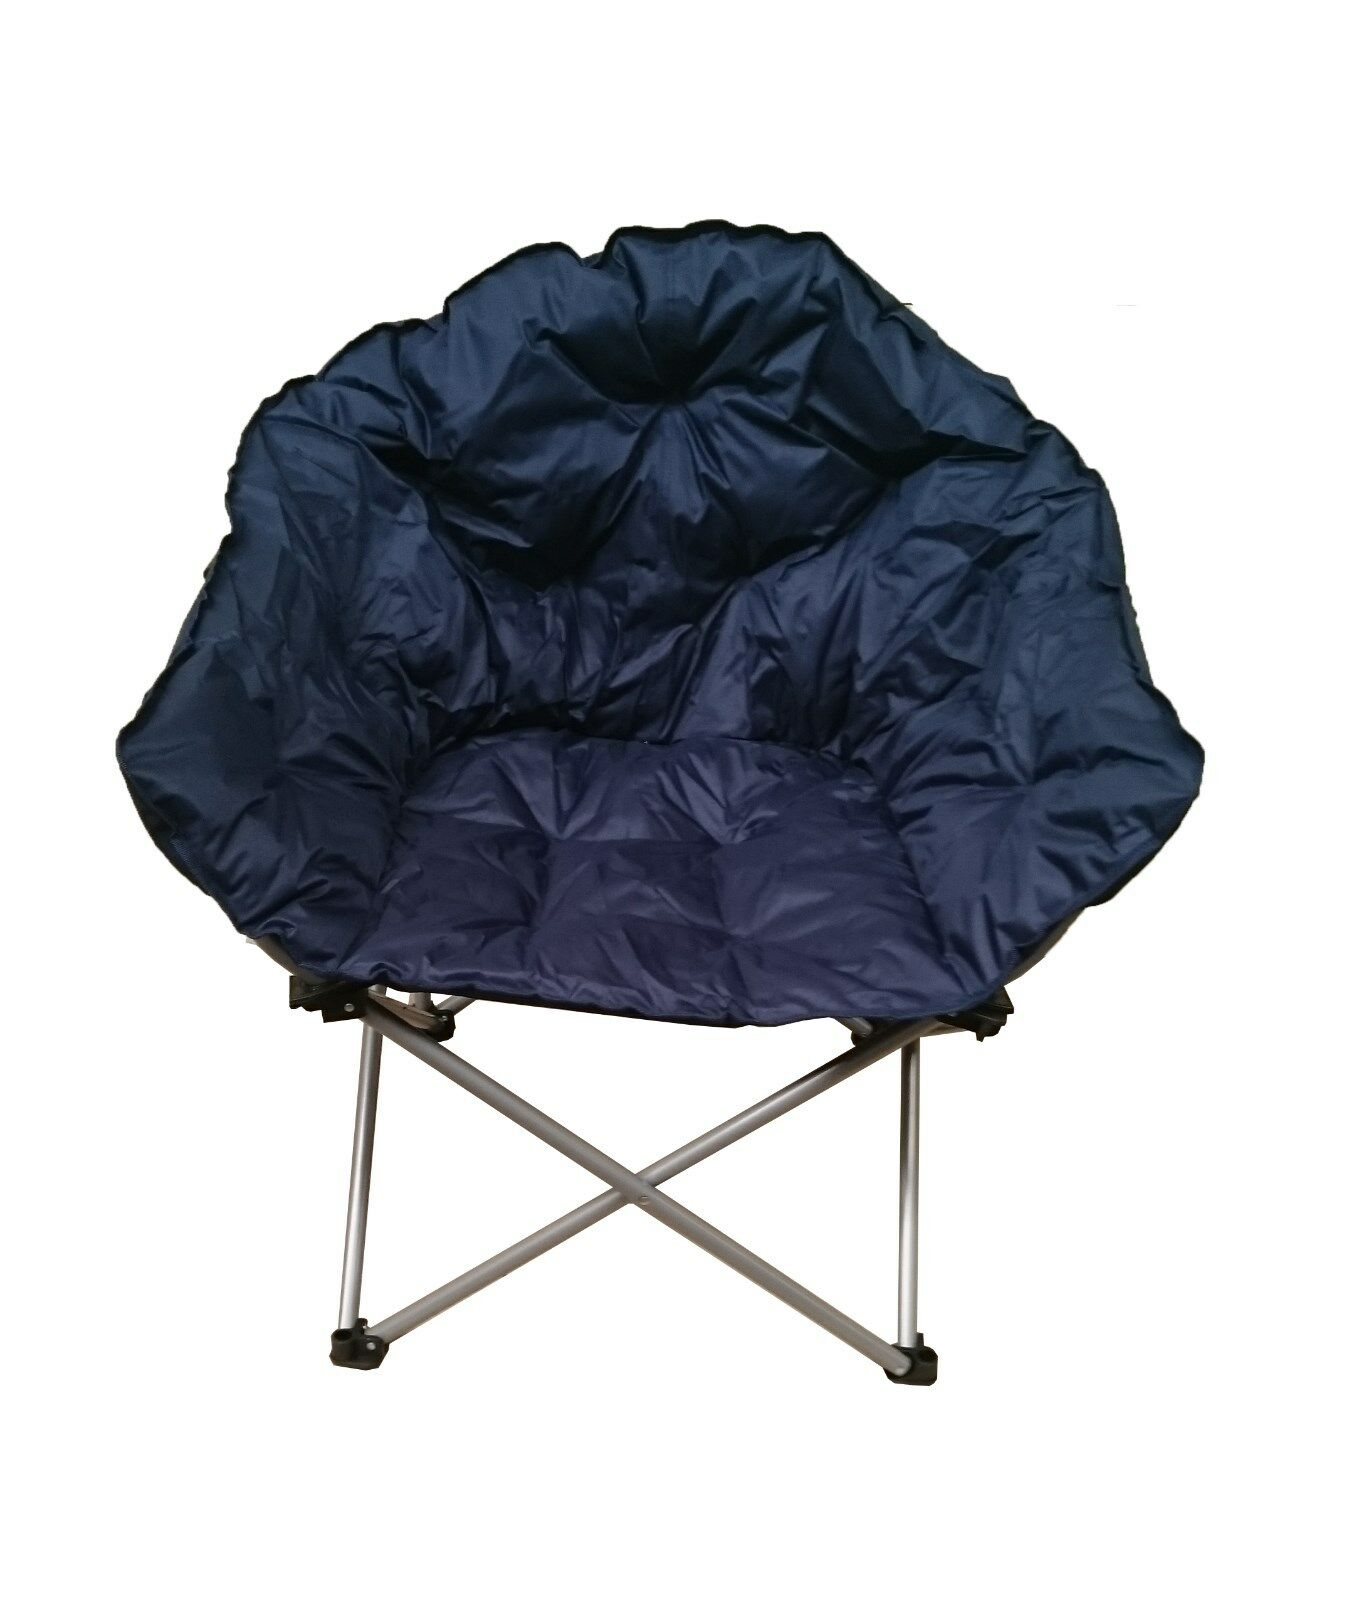 Outback Folding Club Camp Chair Most Comfortable Padded